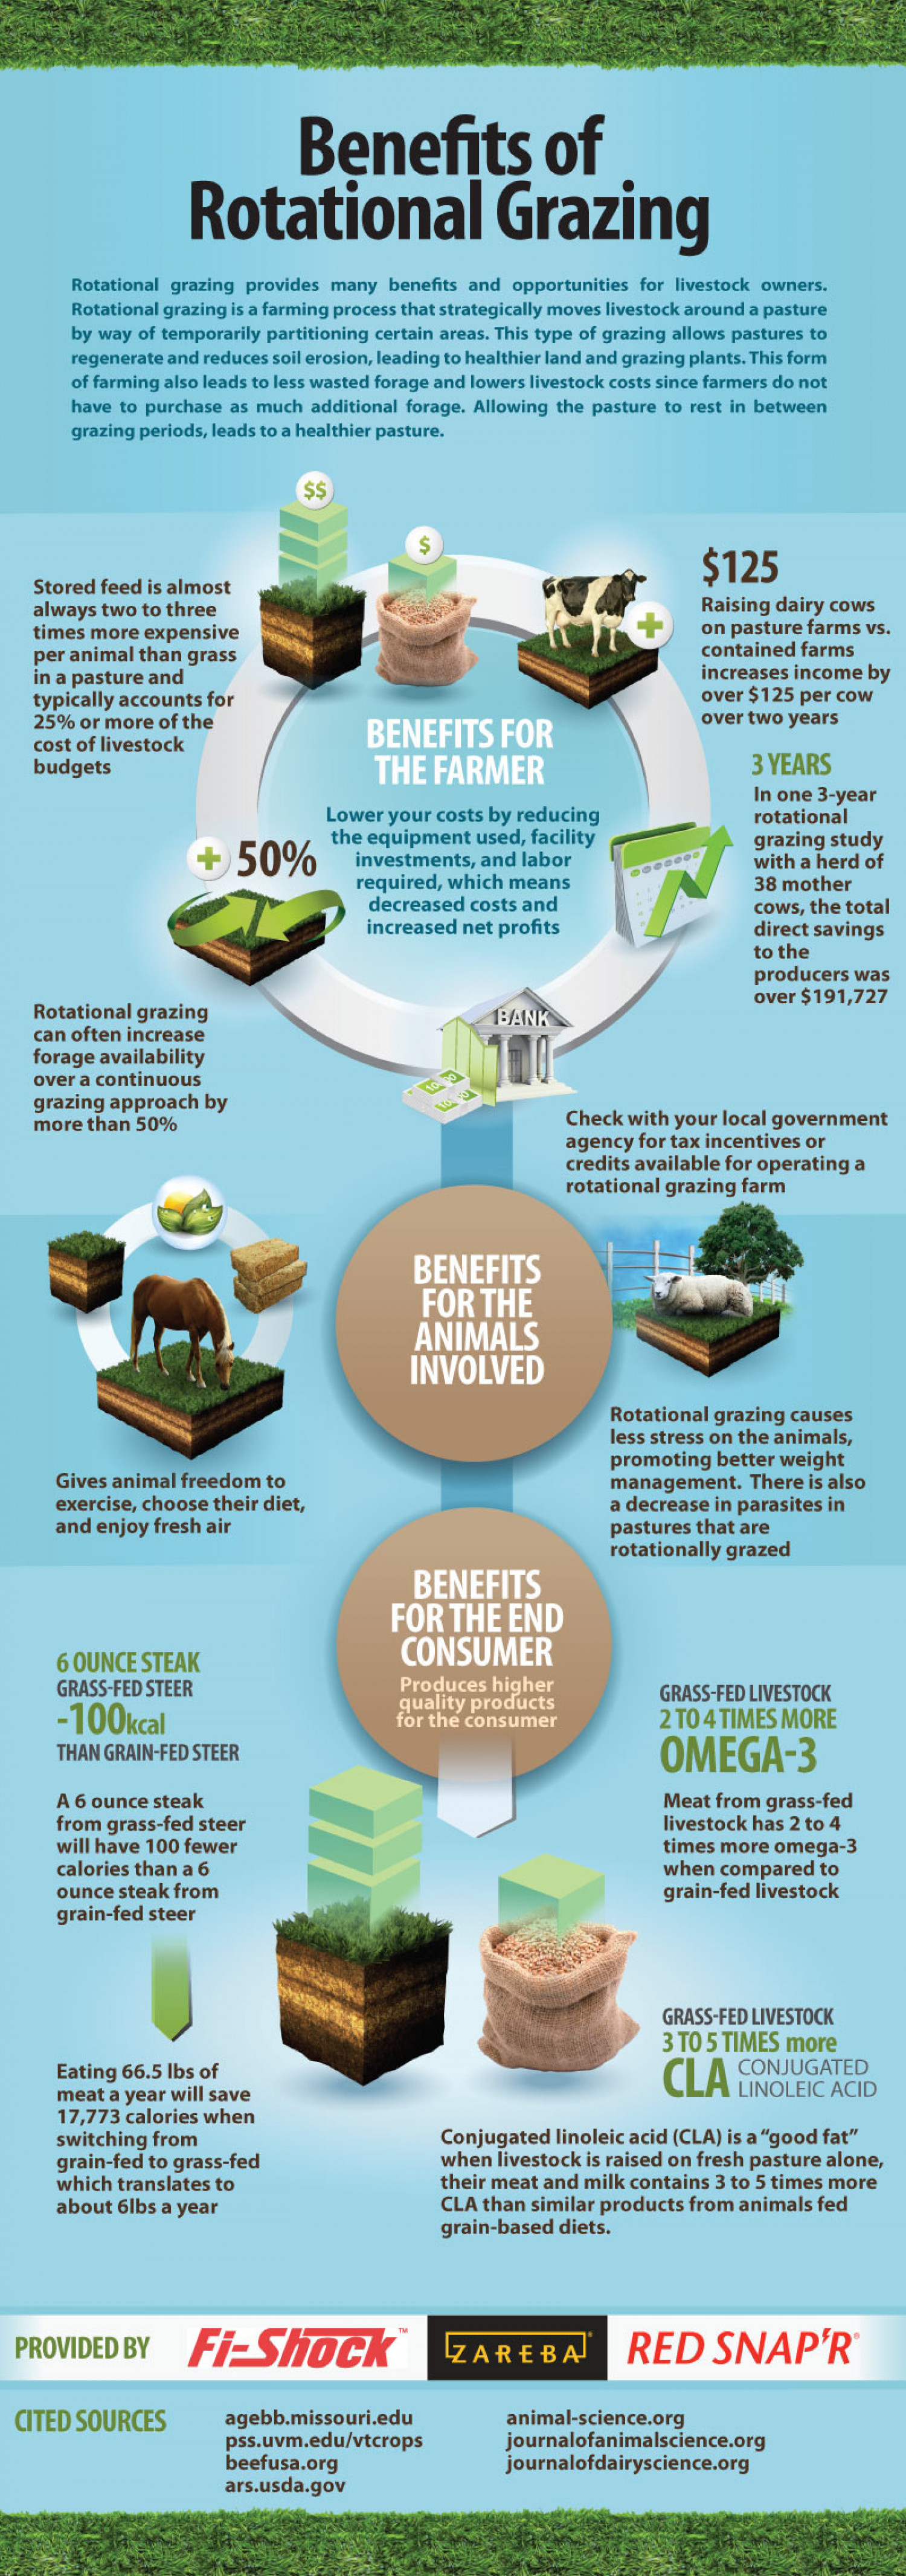 Benefits of Rotational Grazing Infographic